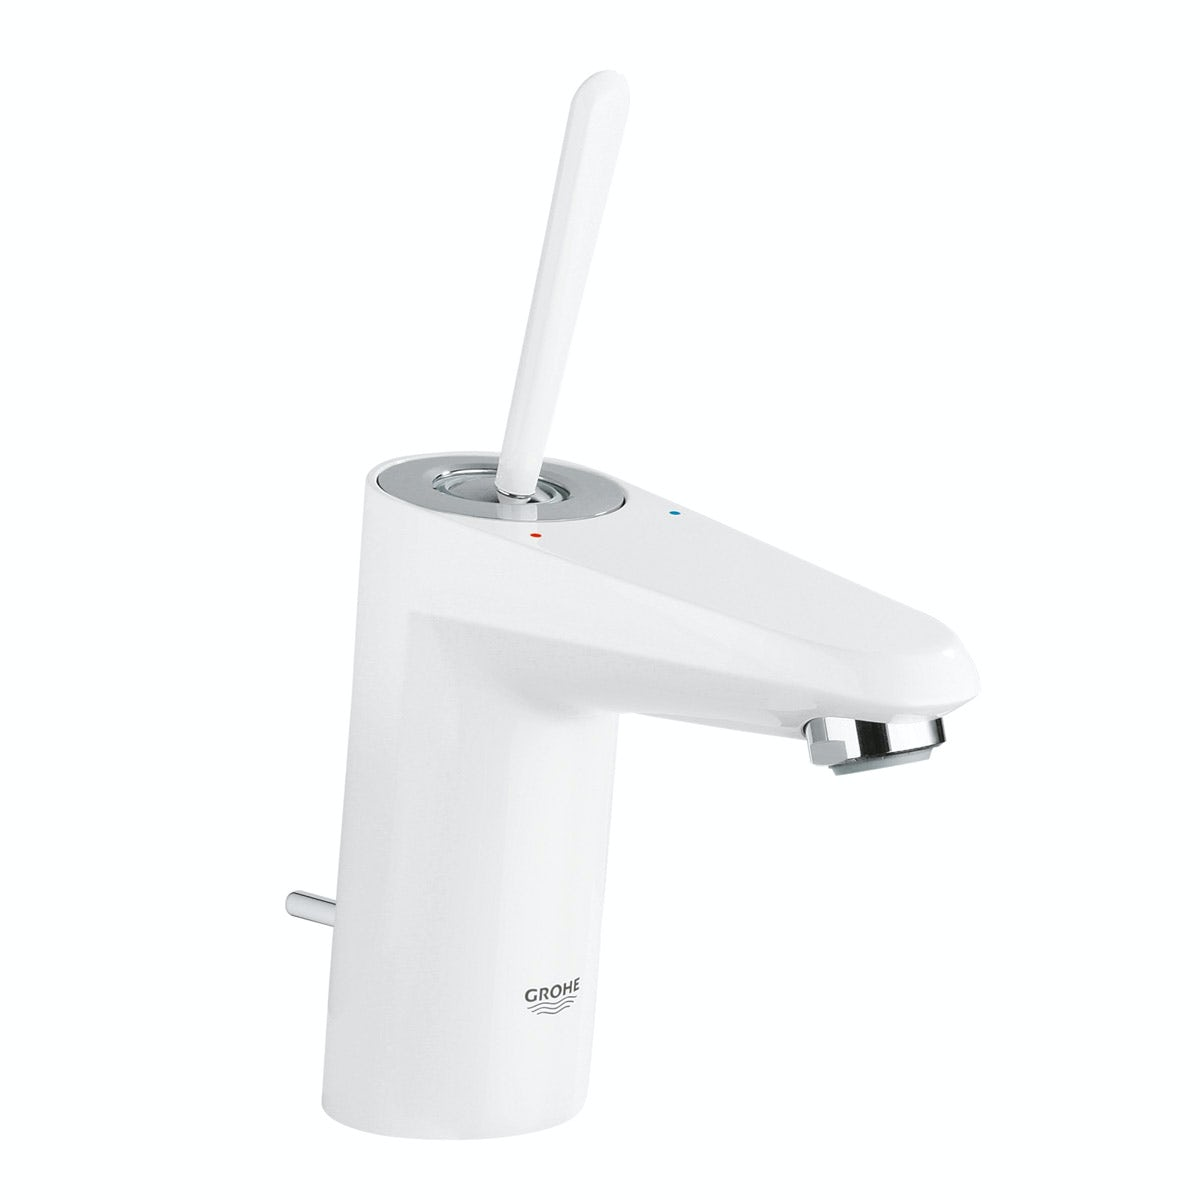 Grohe Eurodisc Joy basin mixer tap white with waste